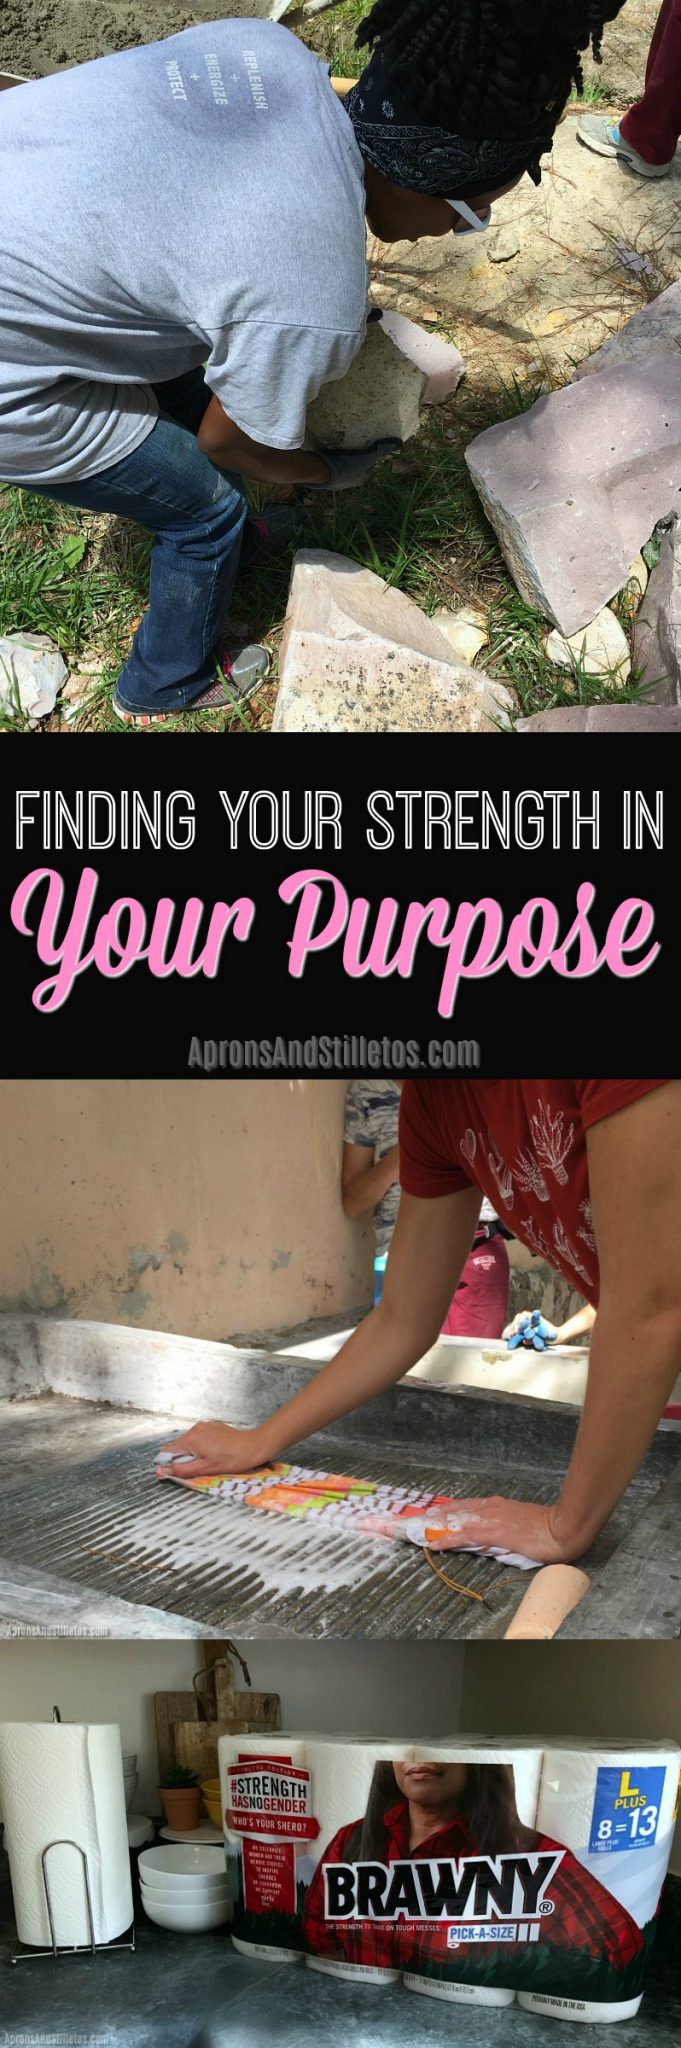 Finding Your Strength in your Purpose